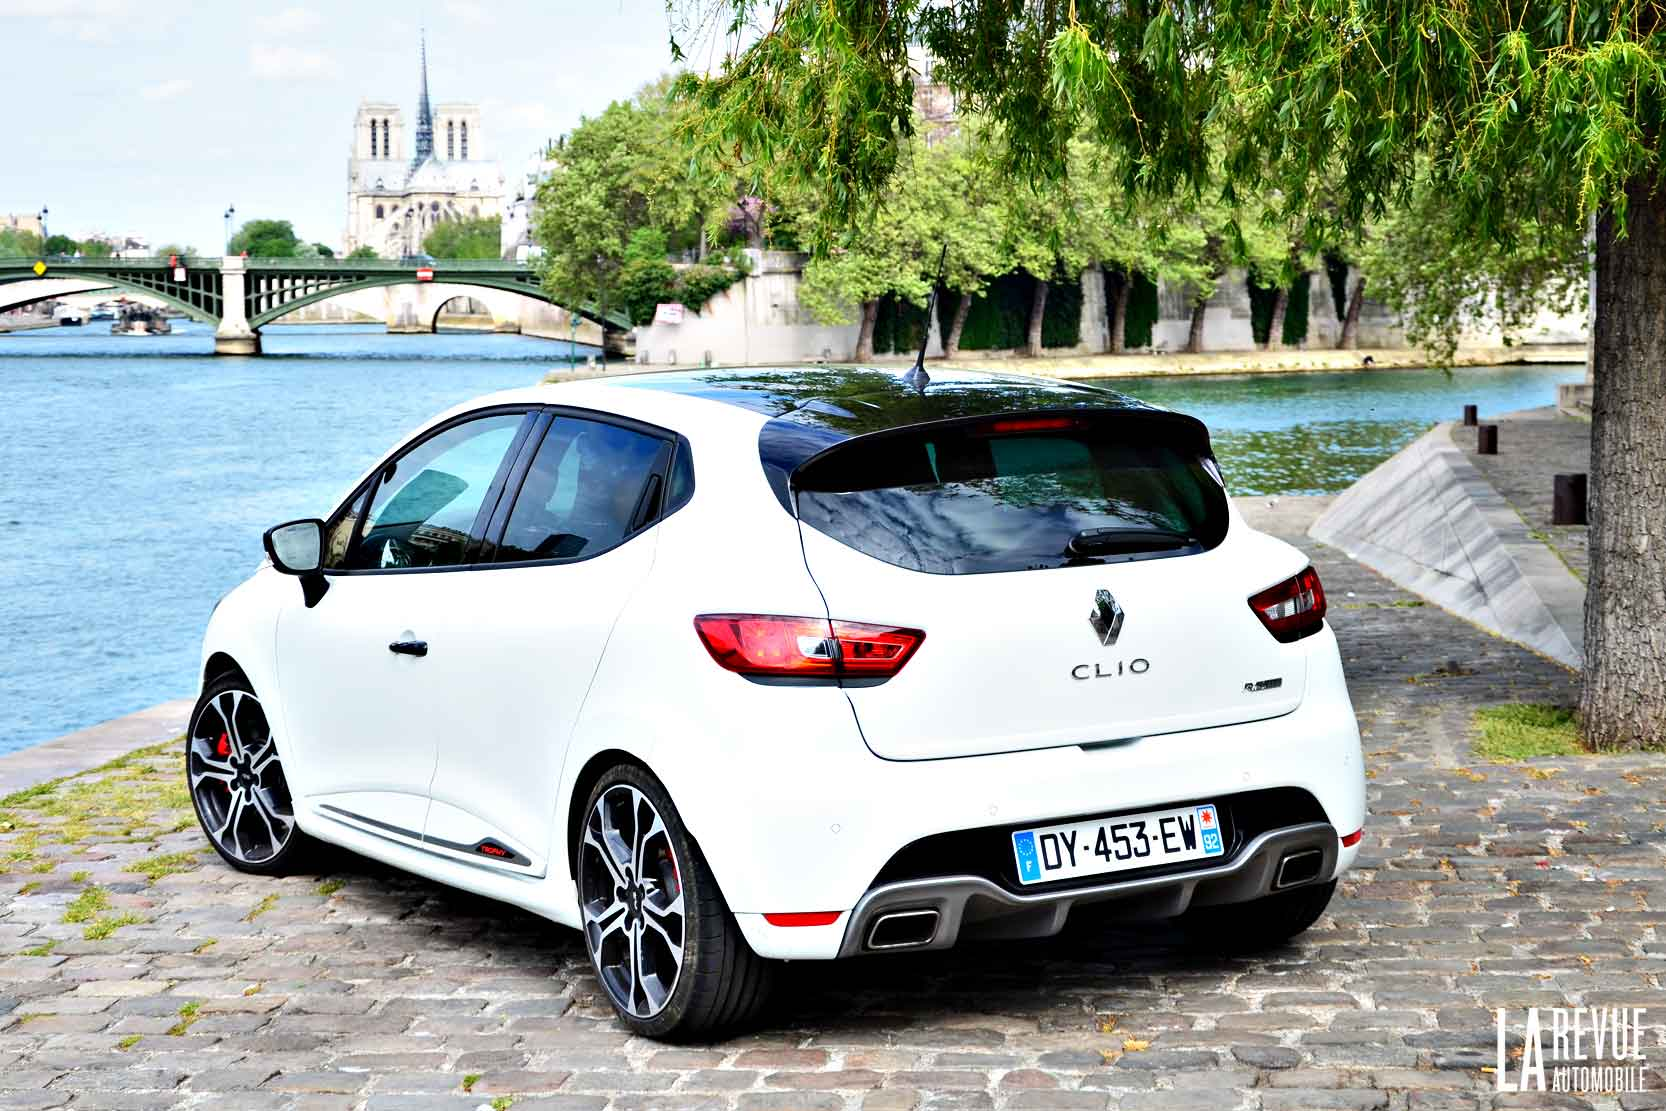 2017 renault clio rs 220 trophy edc car photos catalog 2018. Black Bedroom Furniture Sets. Home Design Ideas